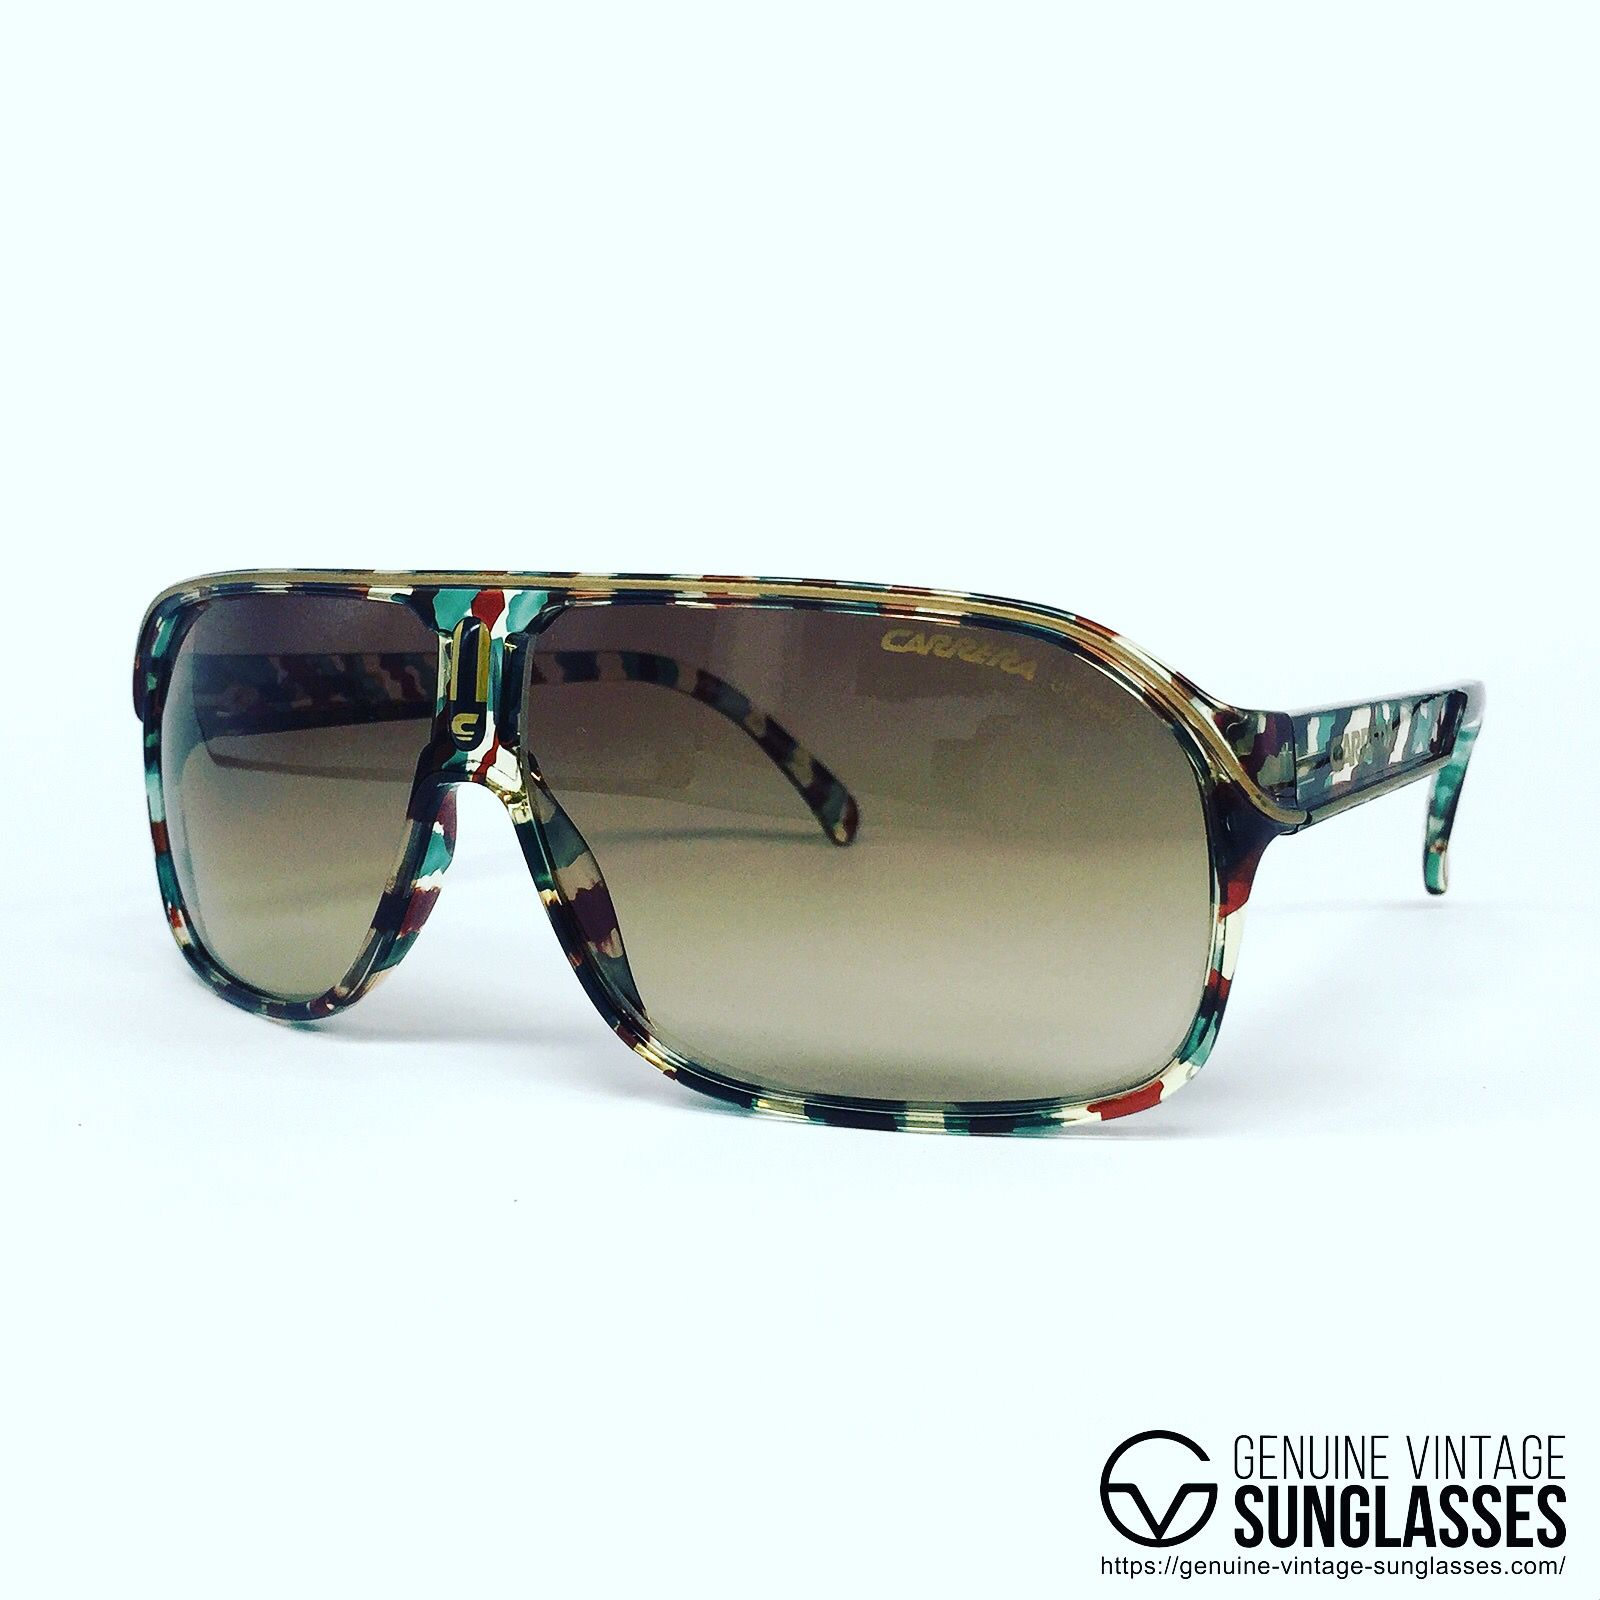 a9fcfeaf0b SOLD! Vintage Carrera Jolly M!! Next week coming in some new ones   genuine vintage sunglasses  eyewearfashion  vintagecollector  influencer   collection ...